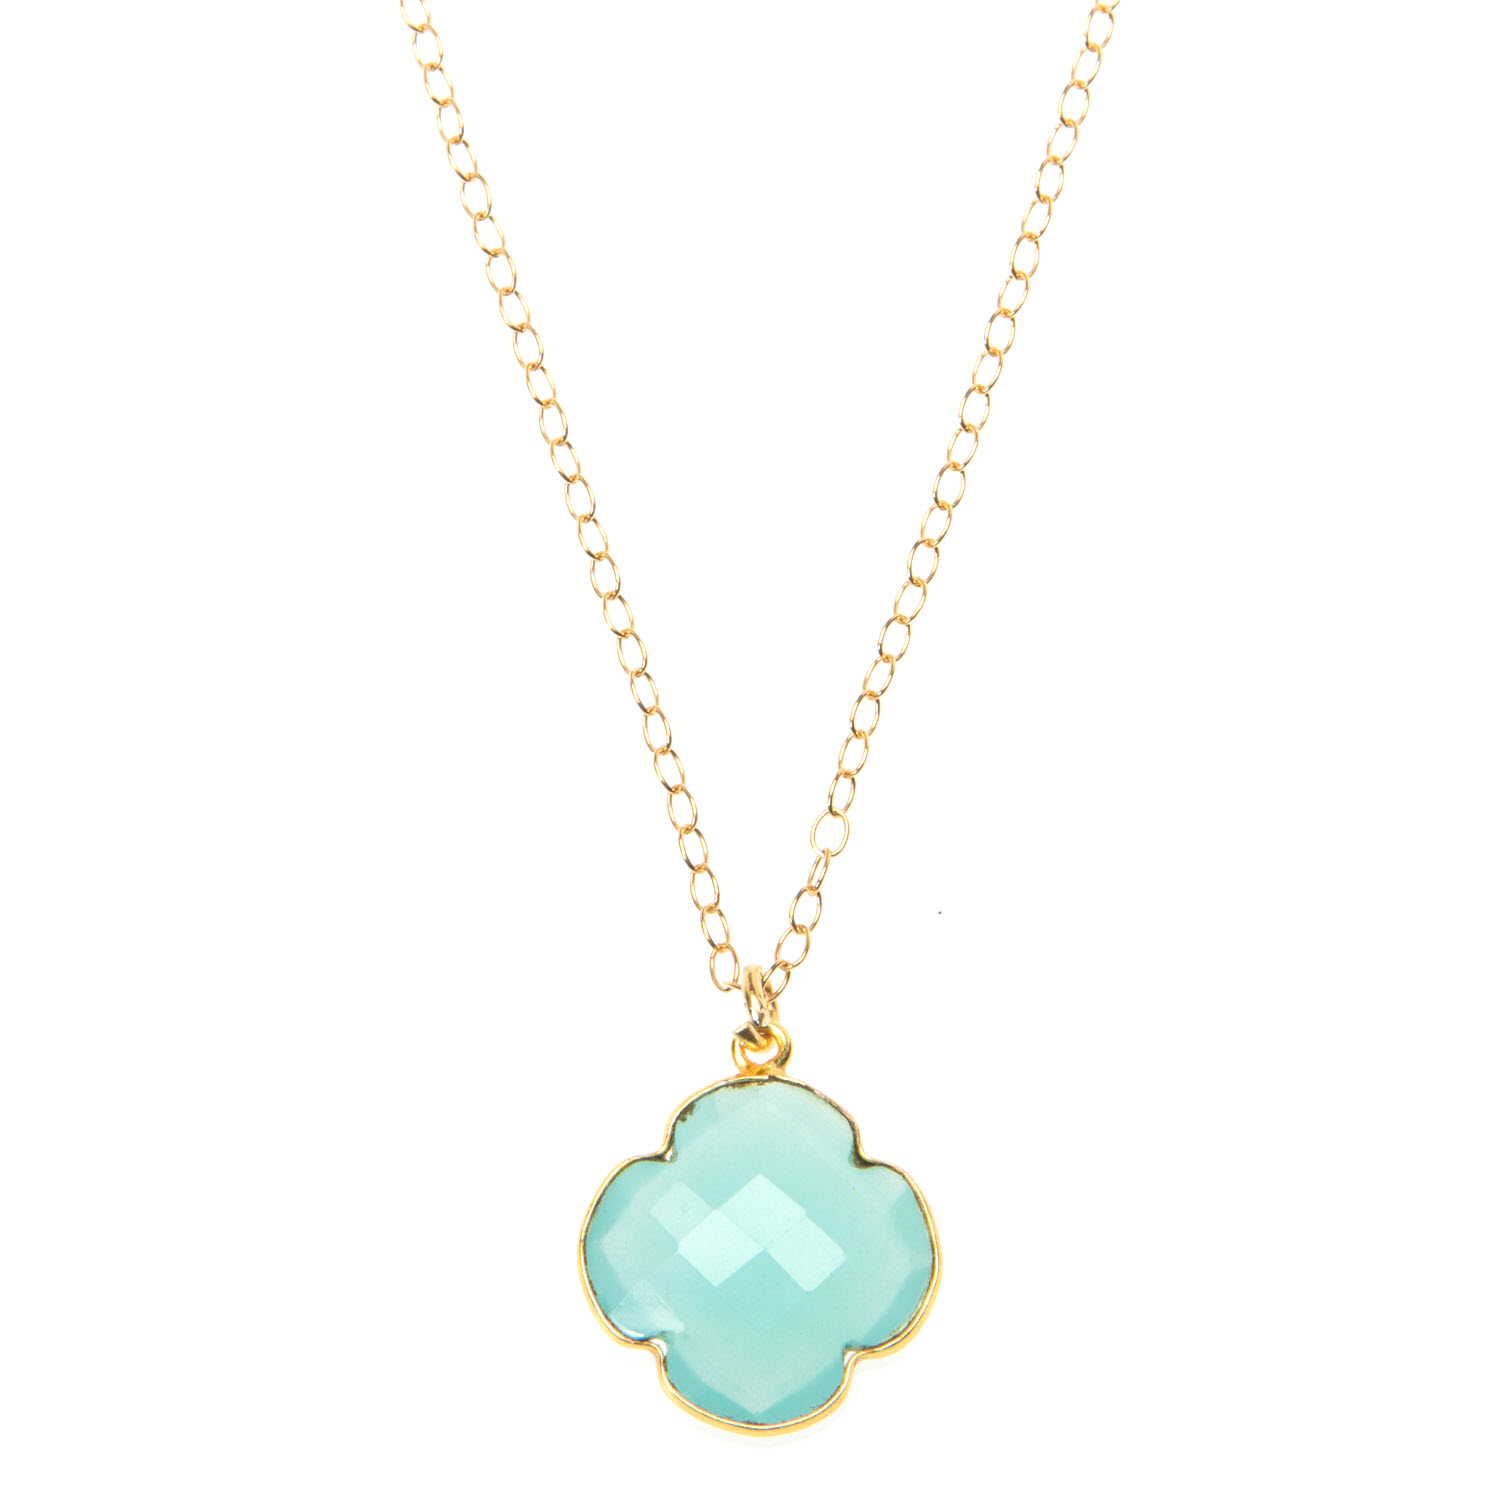 Aqua Blue Chalcedony and Gold Vermeil Necklace